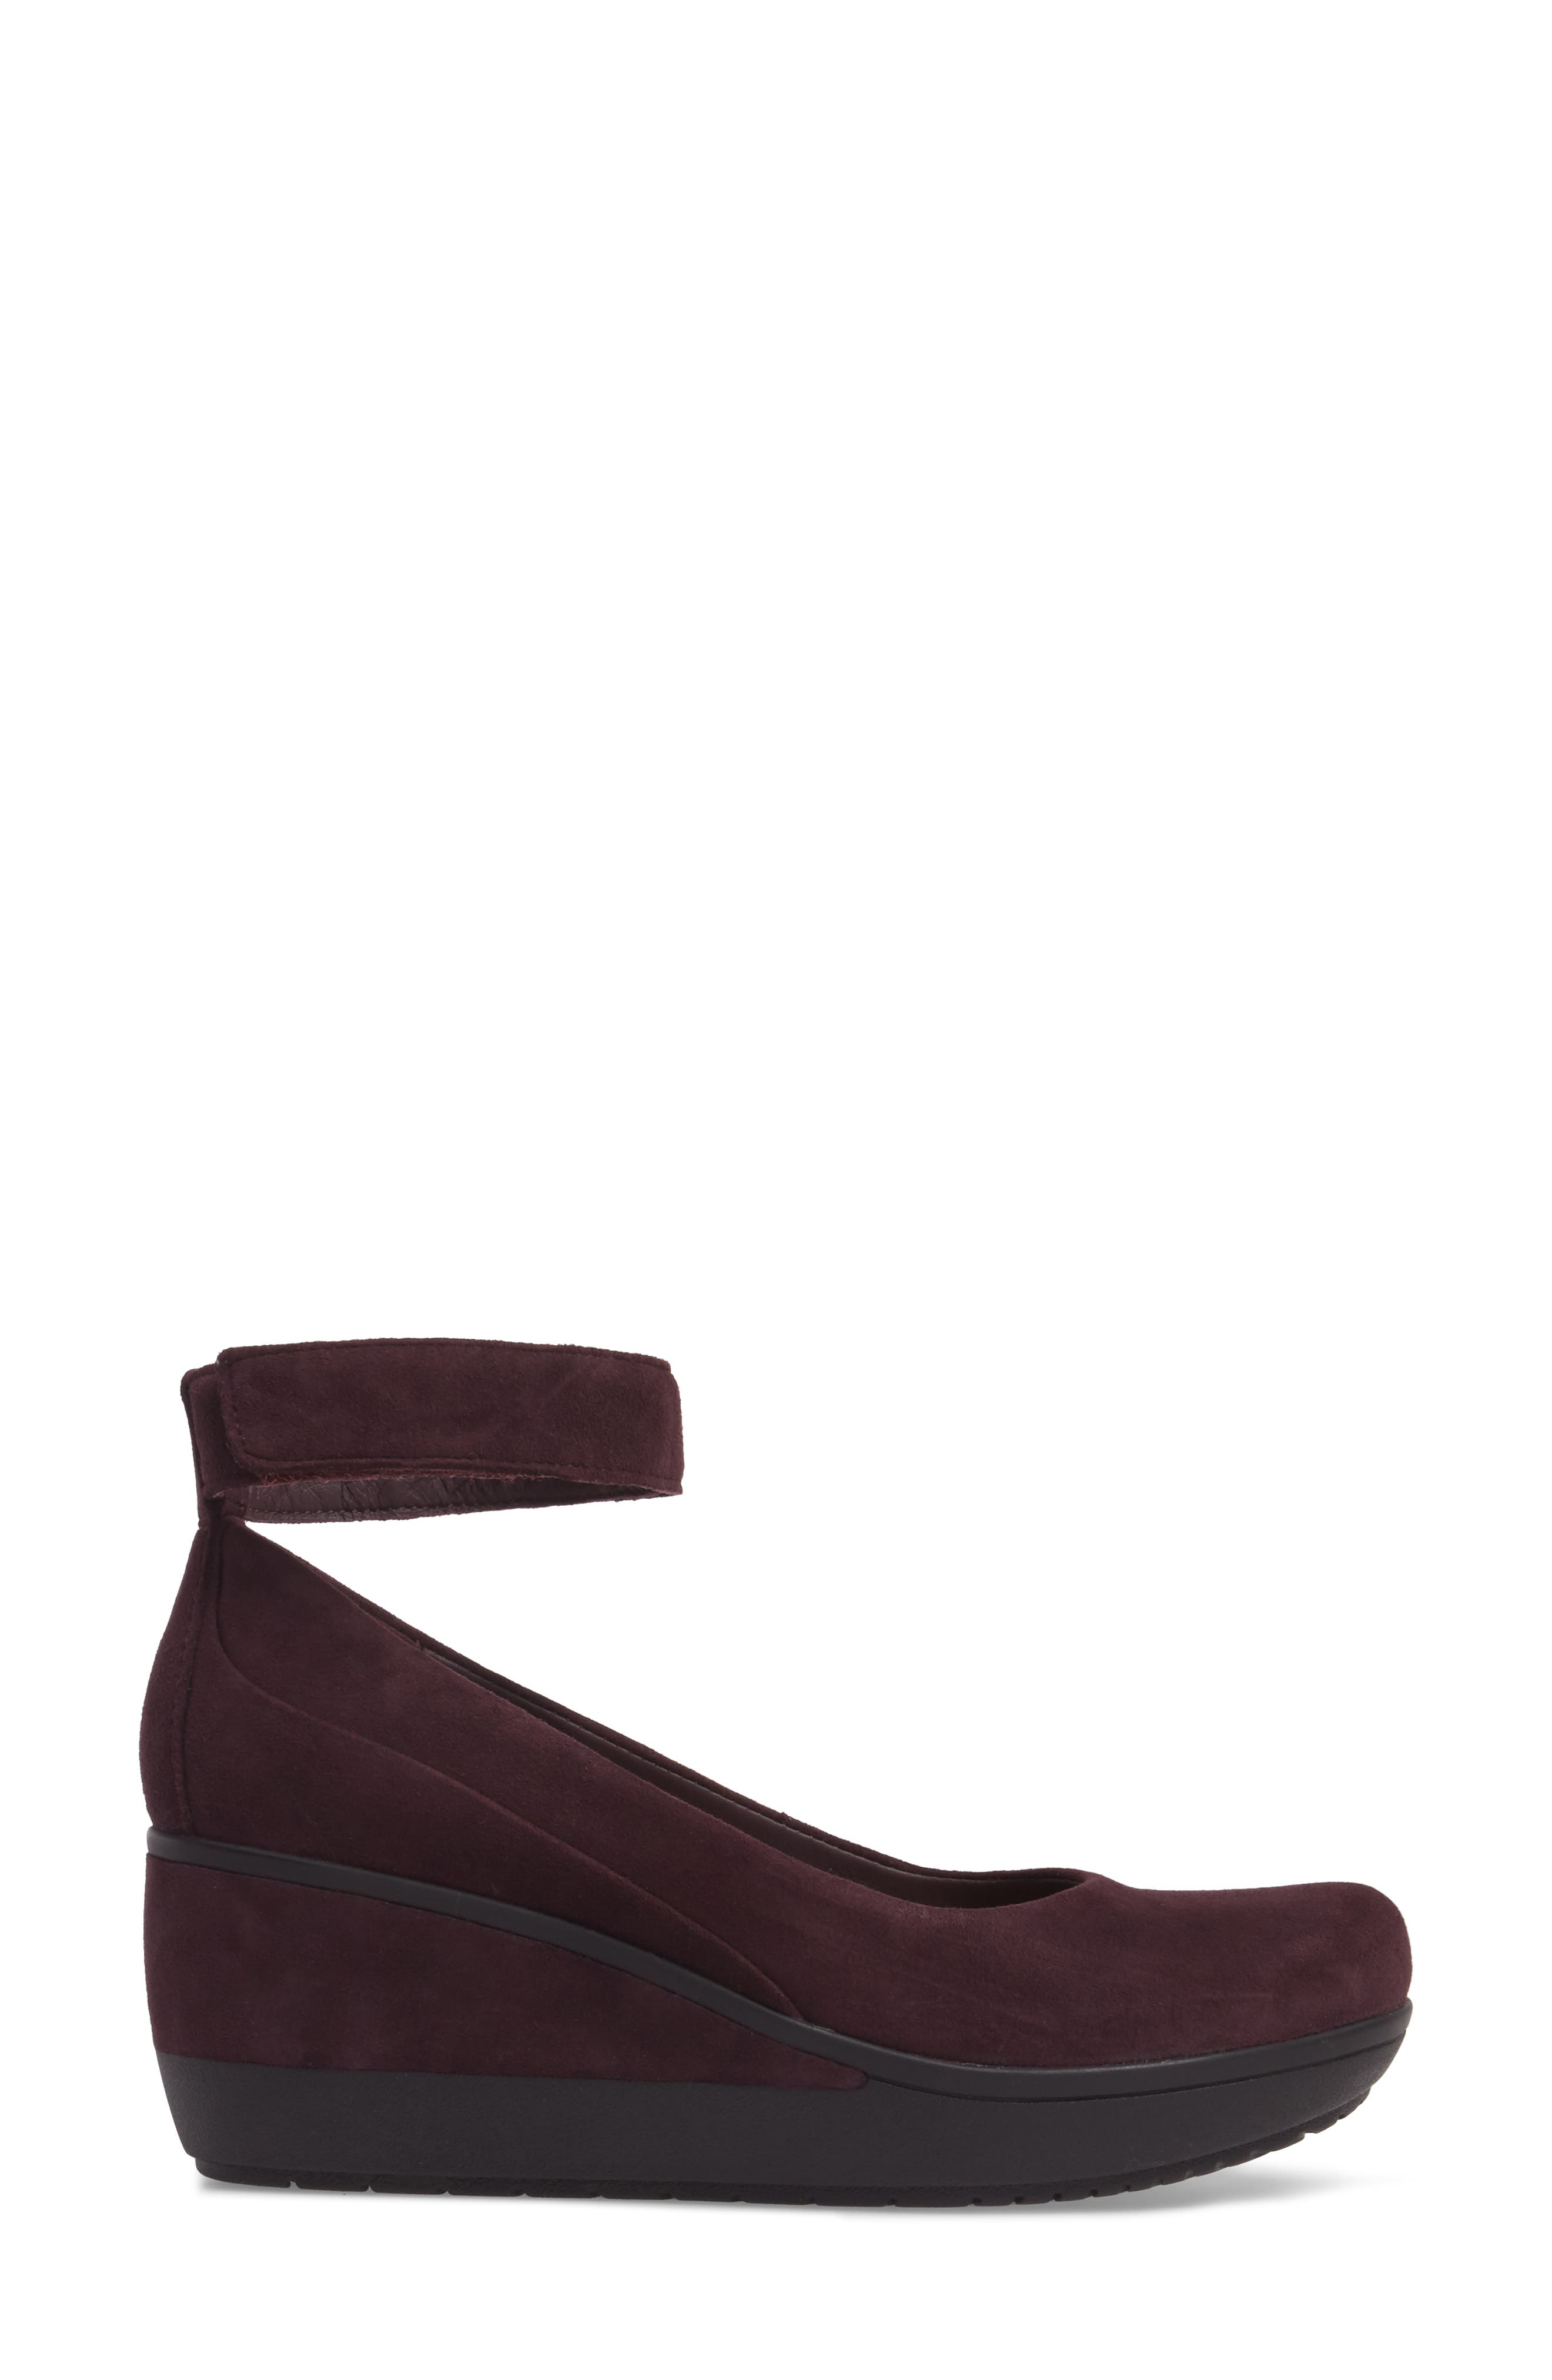 Wynnmere Fox Ankle Strap Pump,                             Alternate thumbnail 3, color,                             Aubergine Suede